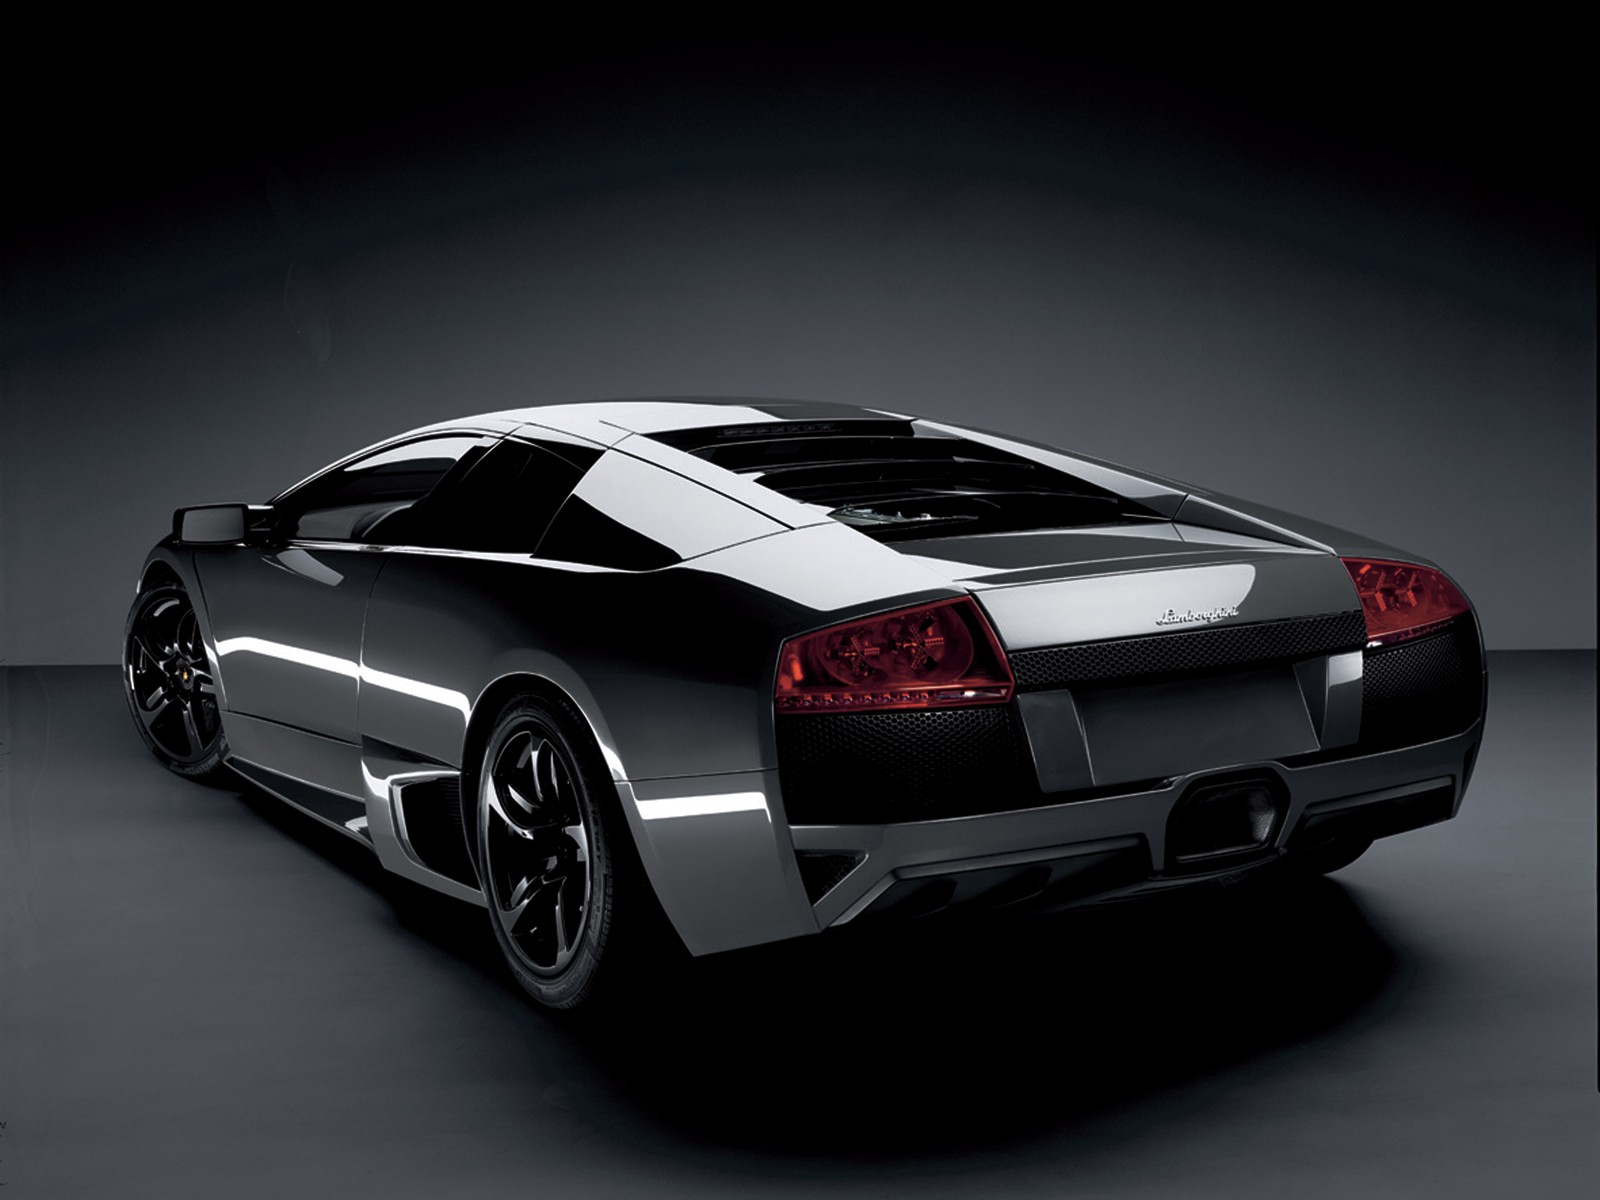 New Cool Cars: New Car Photo: Best Car Wallpapers